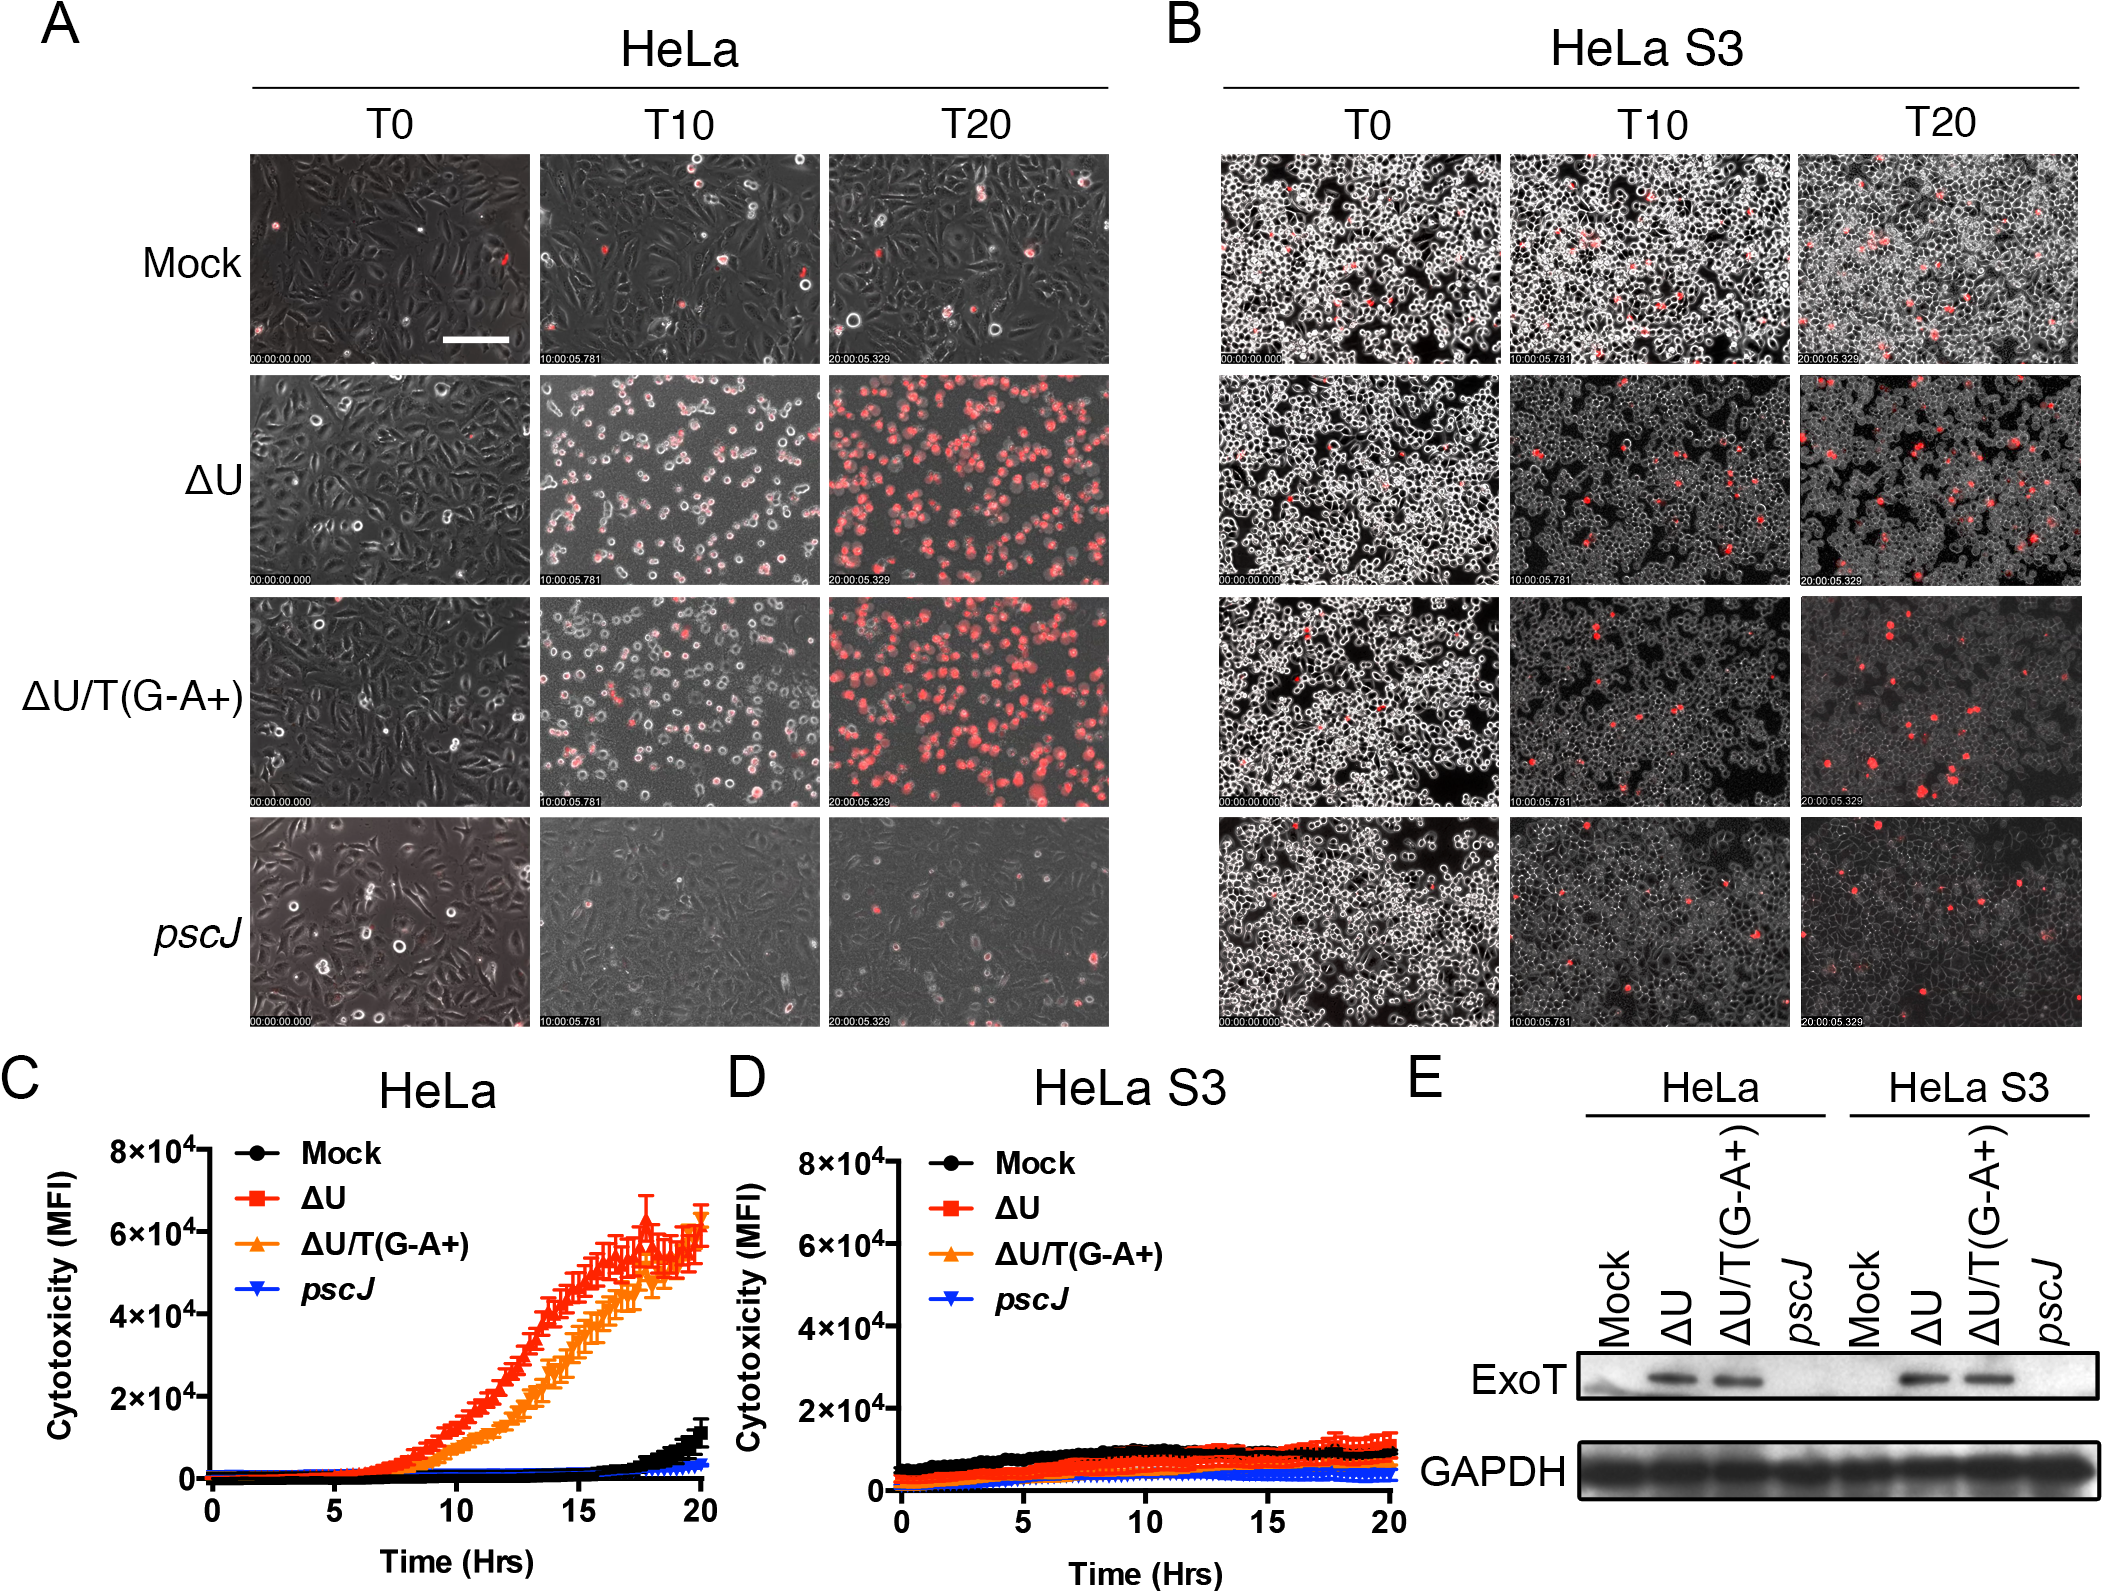 Anoikis resistant HeLa S3 cells are resistant to ExoT/ADPRT-induced cytotoxicity.